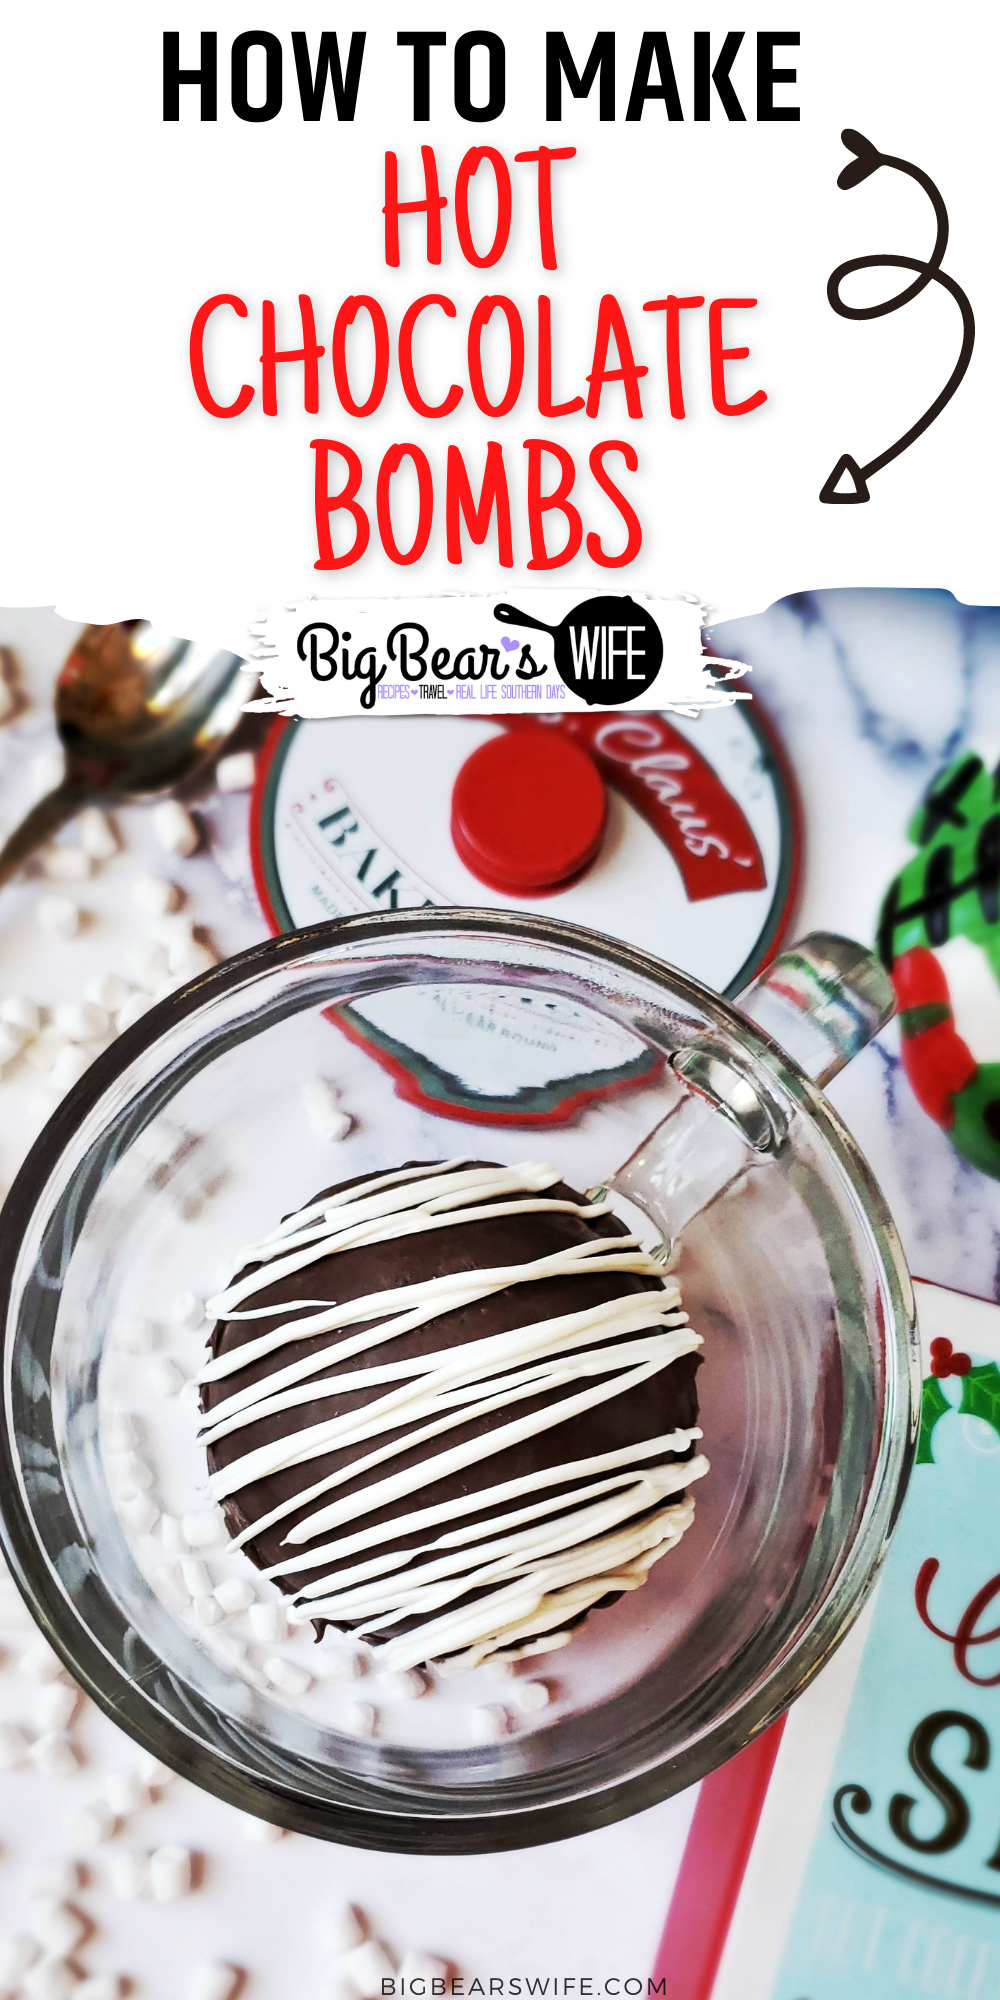 These Hot Chocolate Bombs are like bath bombs for milk! Just pour hot milk over these chocolate bombs that are are filled with hot chocolate mix and marshmallows for the best mug of hot chocolate ever!  via @bigbearswife